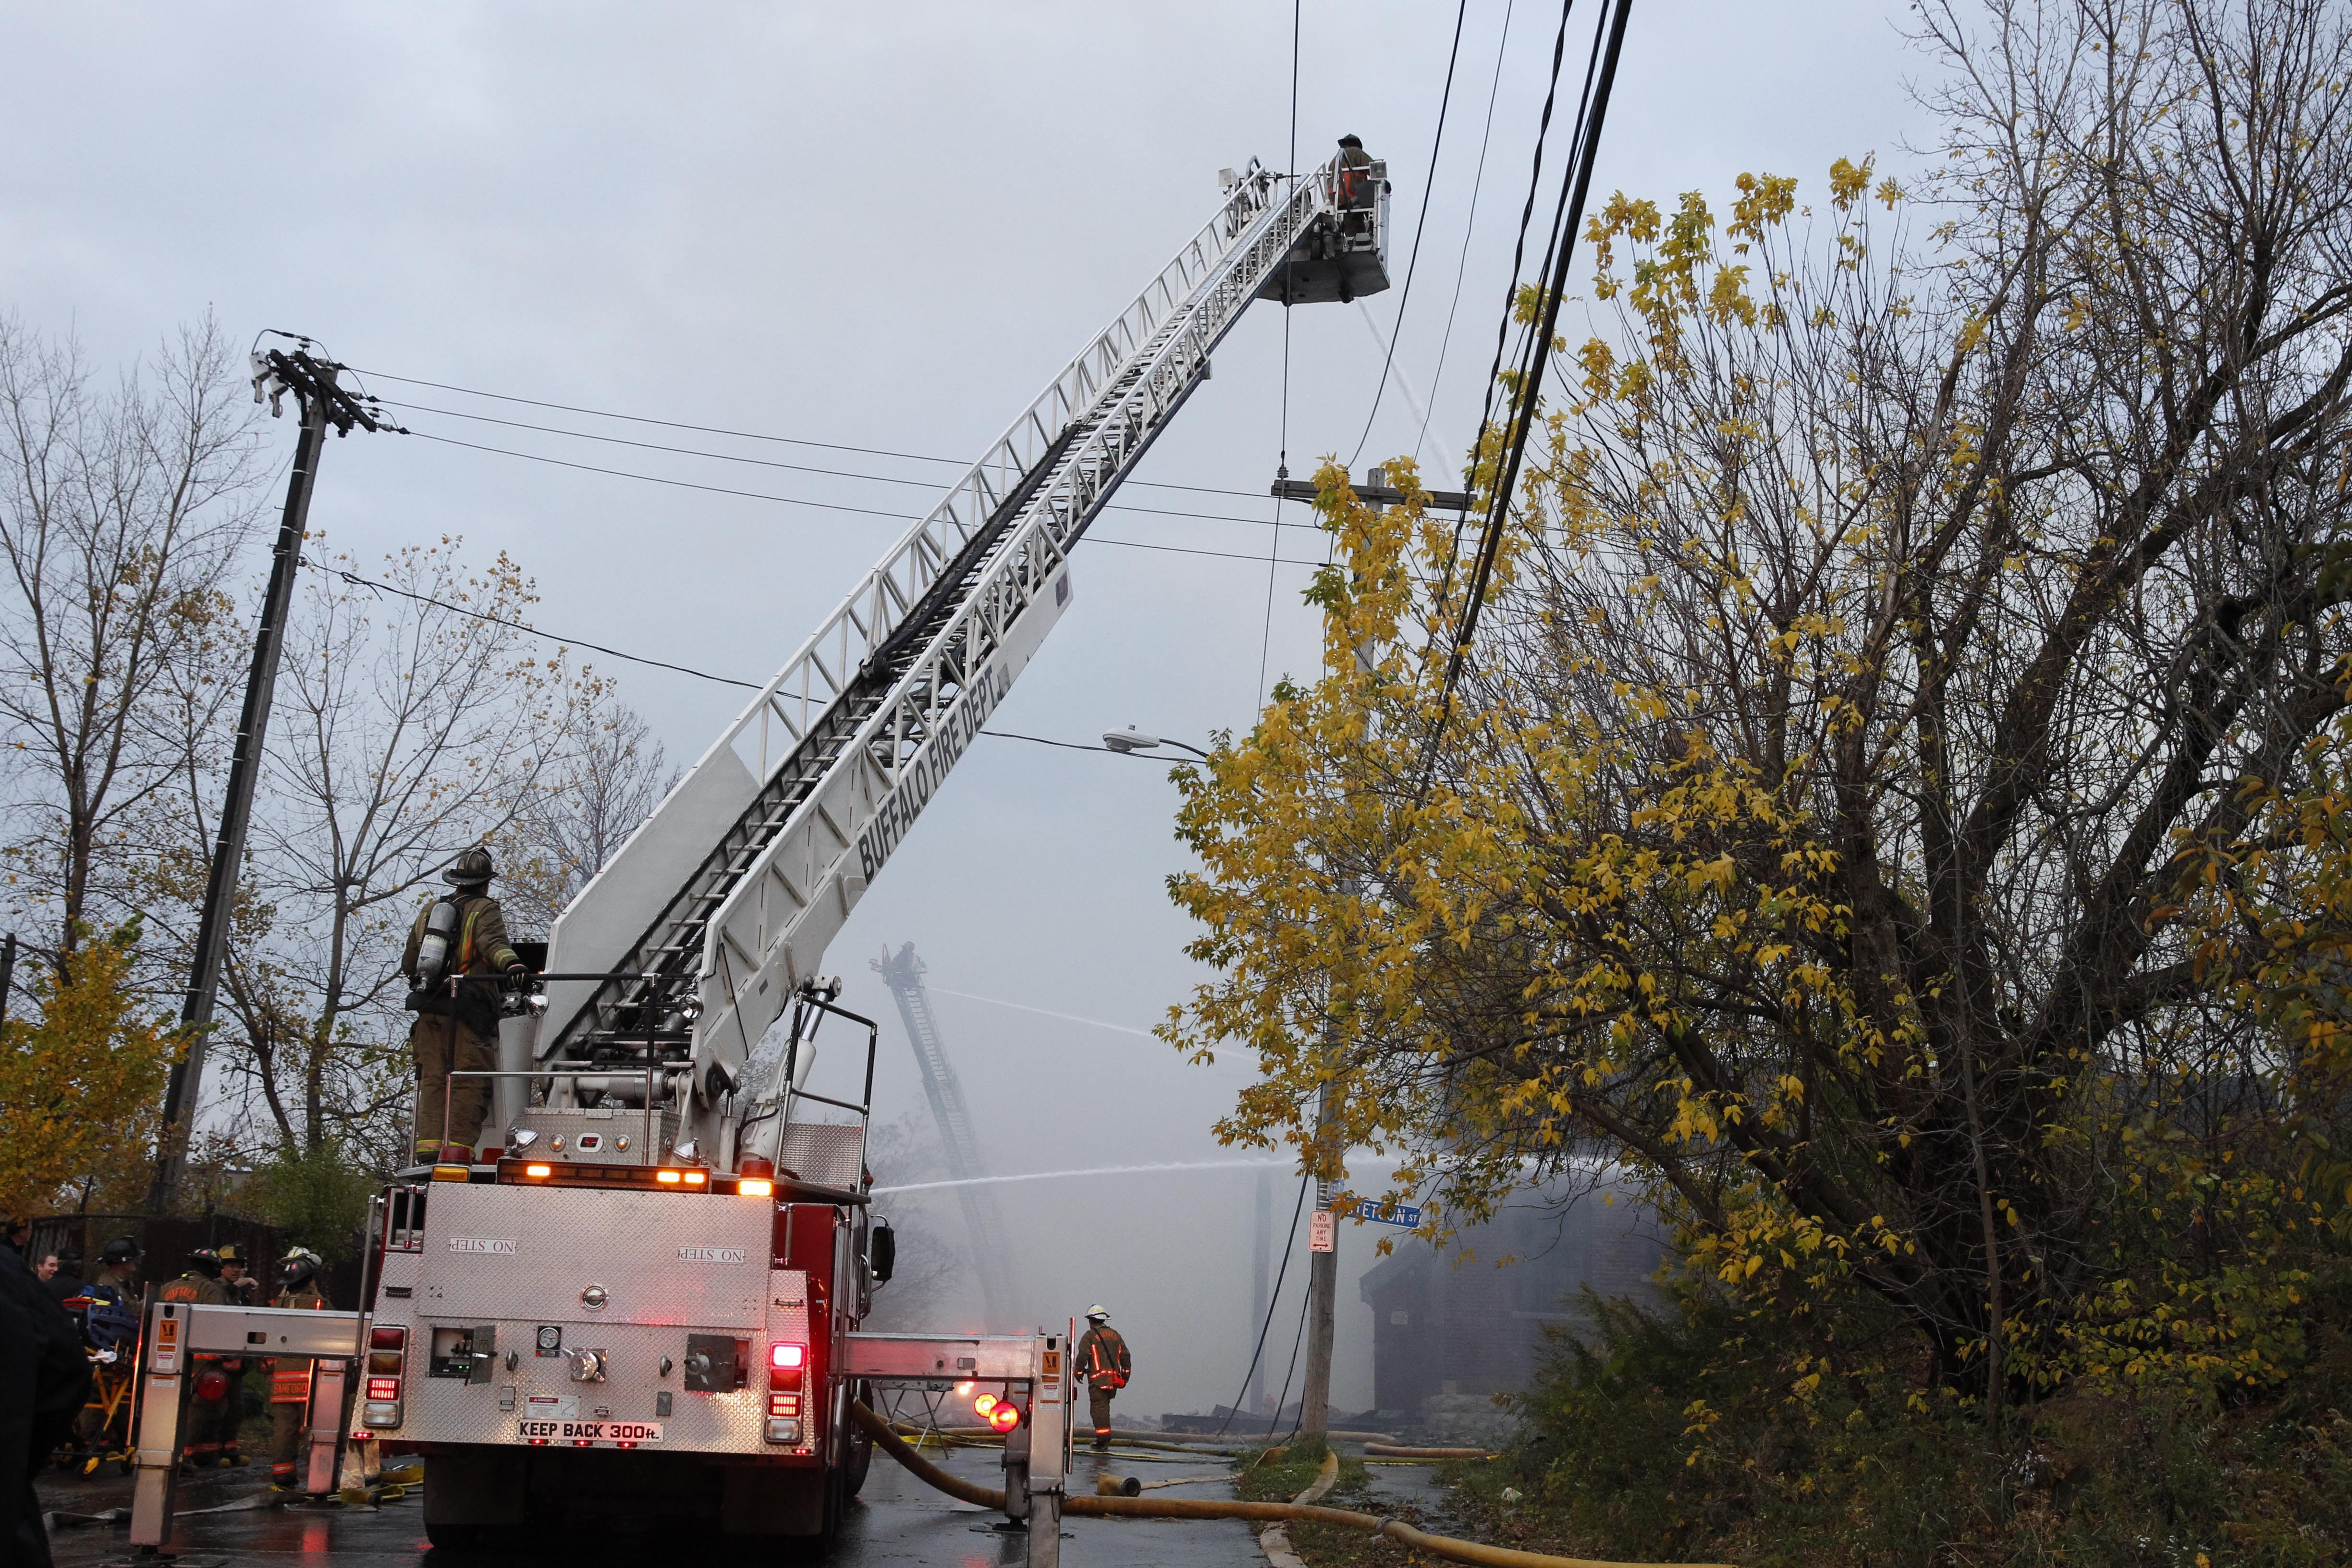 Buffalo firefighters responded to a four-alarm warehouse fire at 453 Howard Street in Buffalo , Tuesday, Oct. 28, 2014.  There were no injuries as firefighters continued to fight the blaze.  Structures were damaged at 463 and 173 Metcalfe. (Sharon Cantillon/Buffalo News)